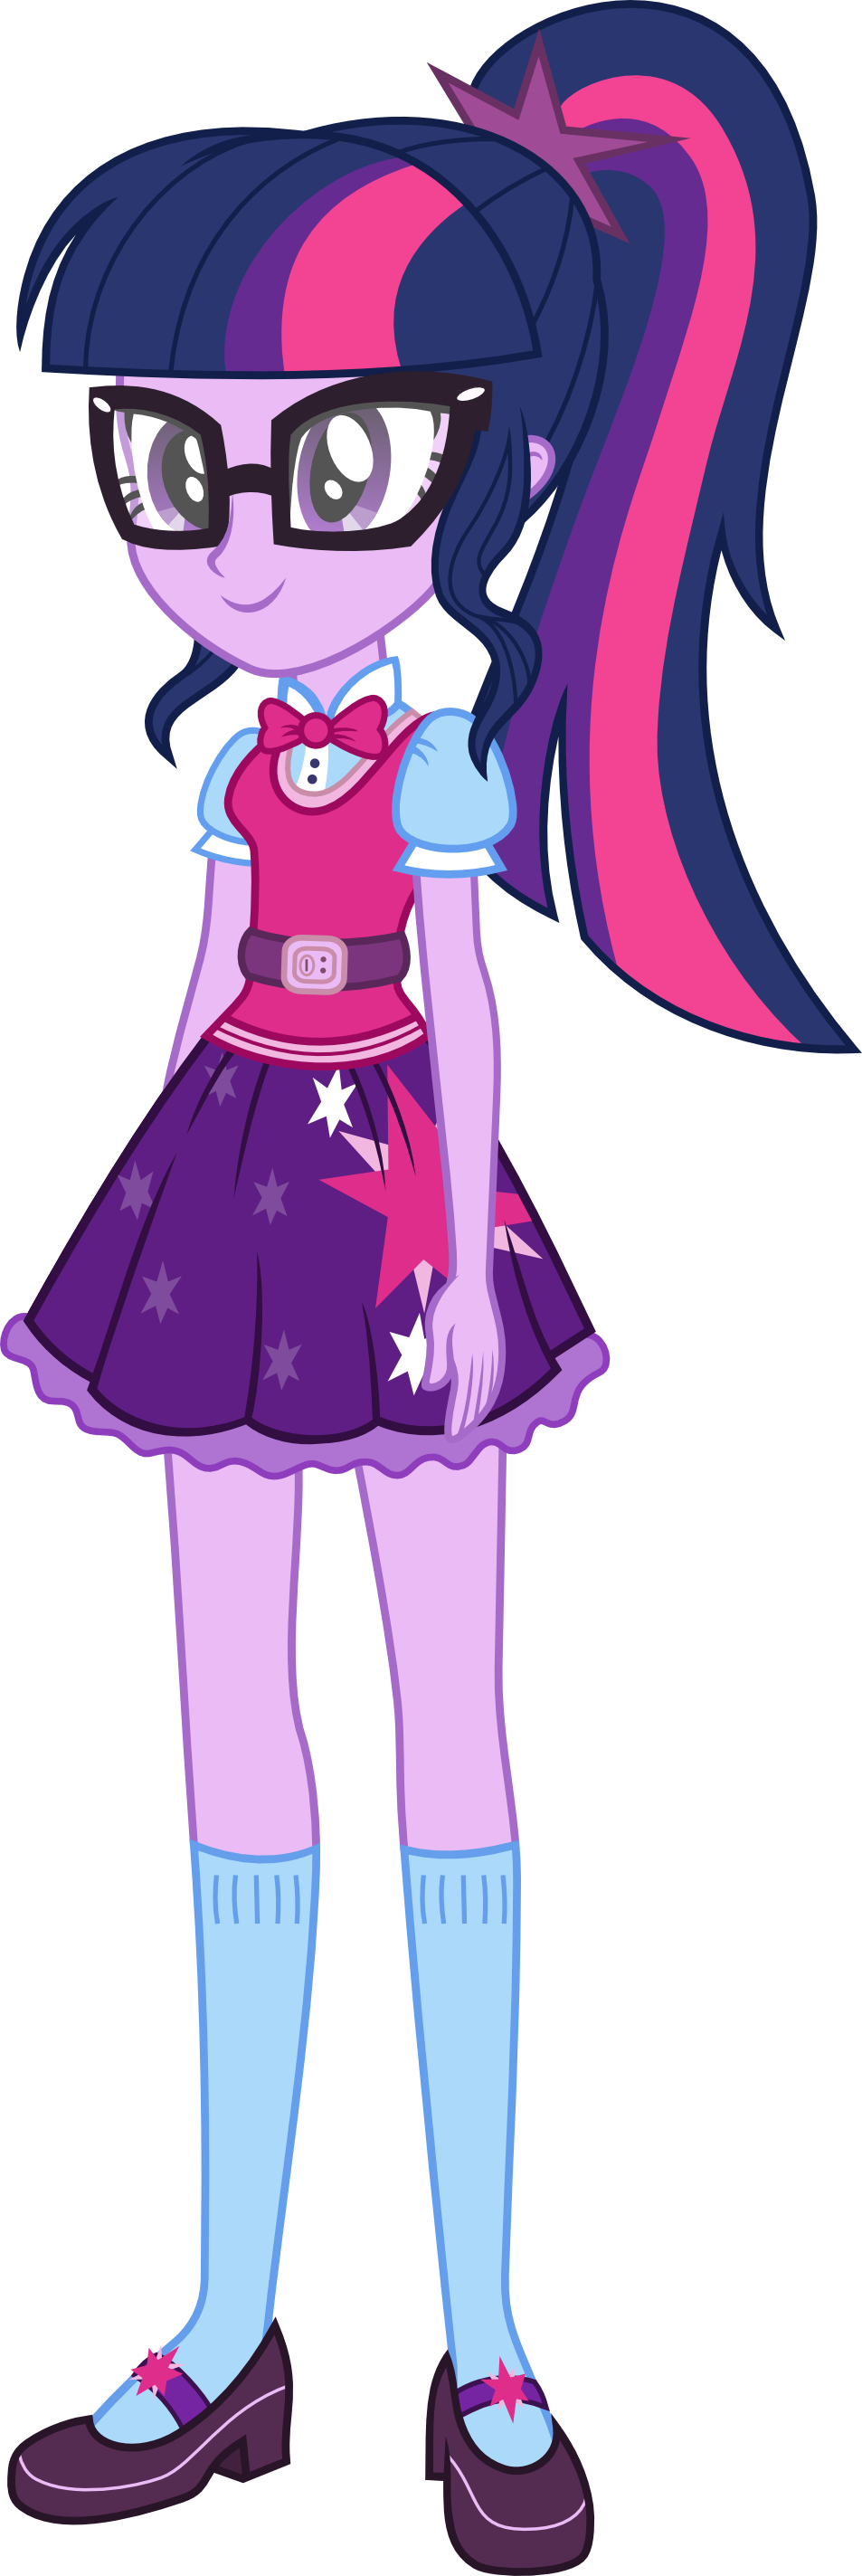 Andrestoons sci-twi: love her or hate her? - equestria girls - mlp forums